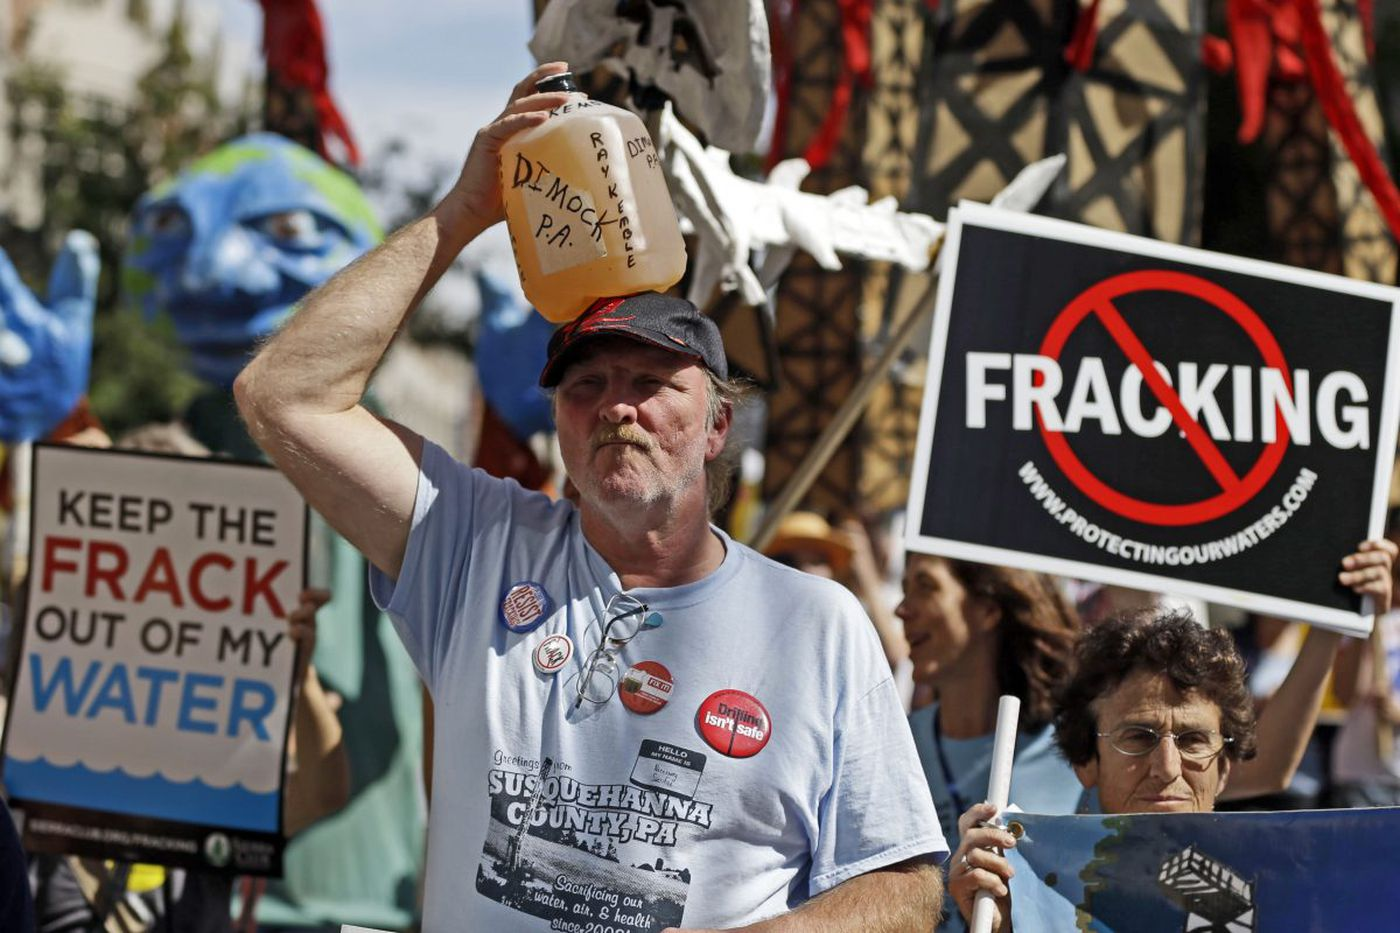 As fracking lawsuits draw to a close, a look back at what happened in Dimock